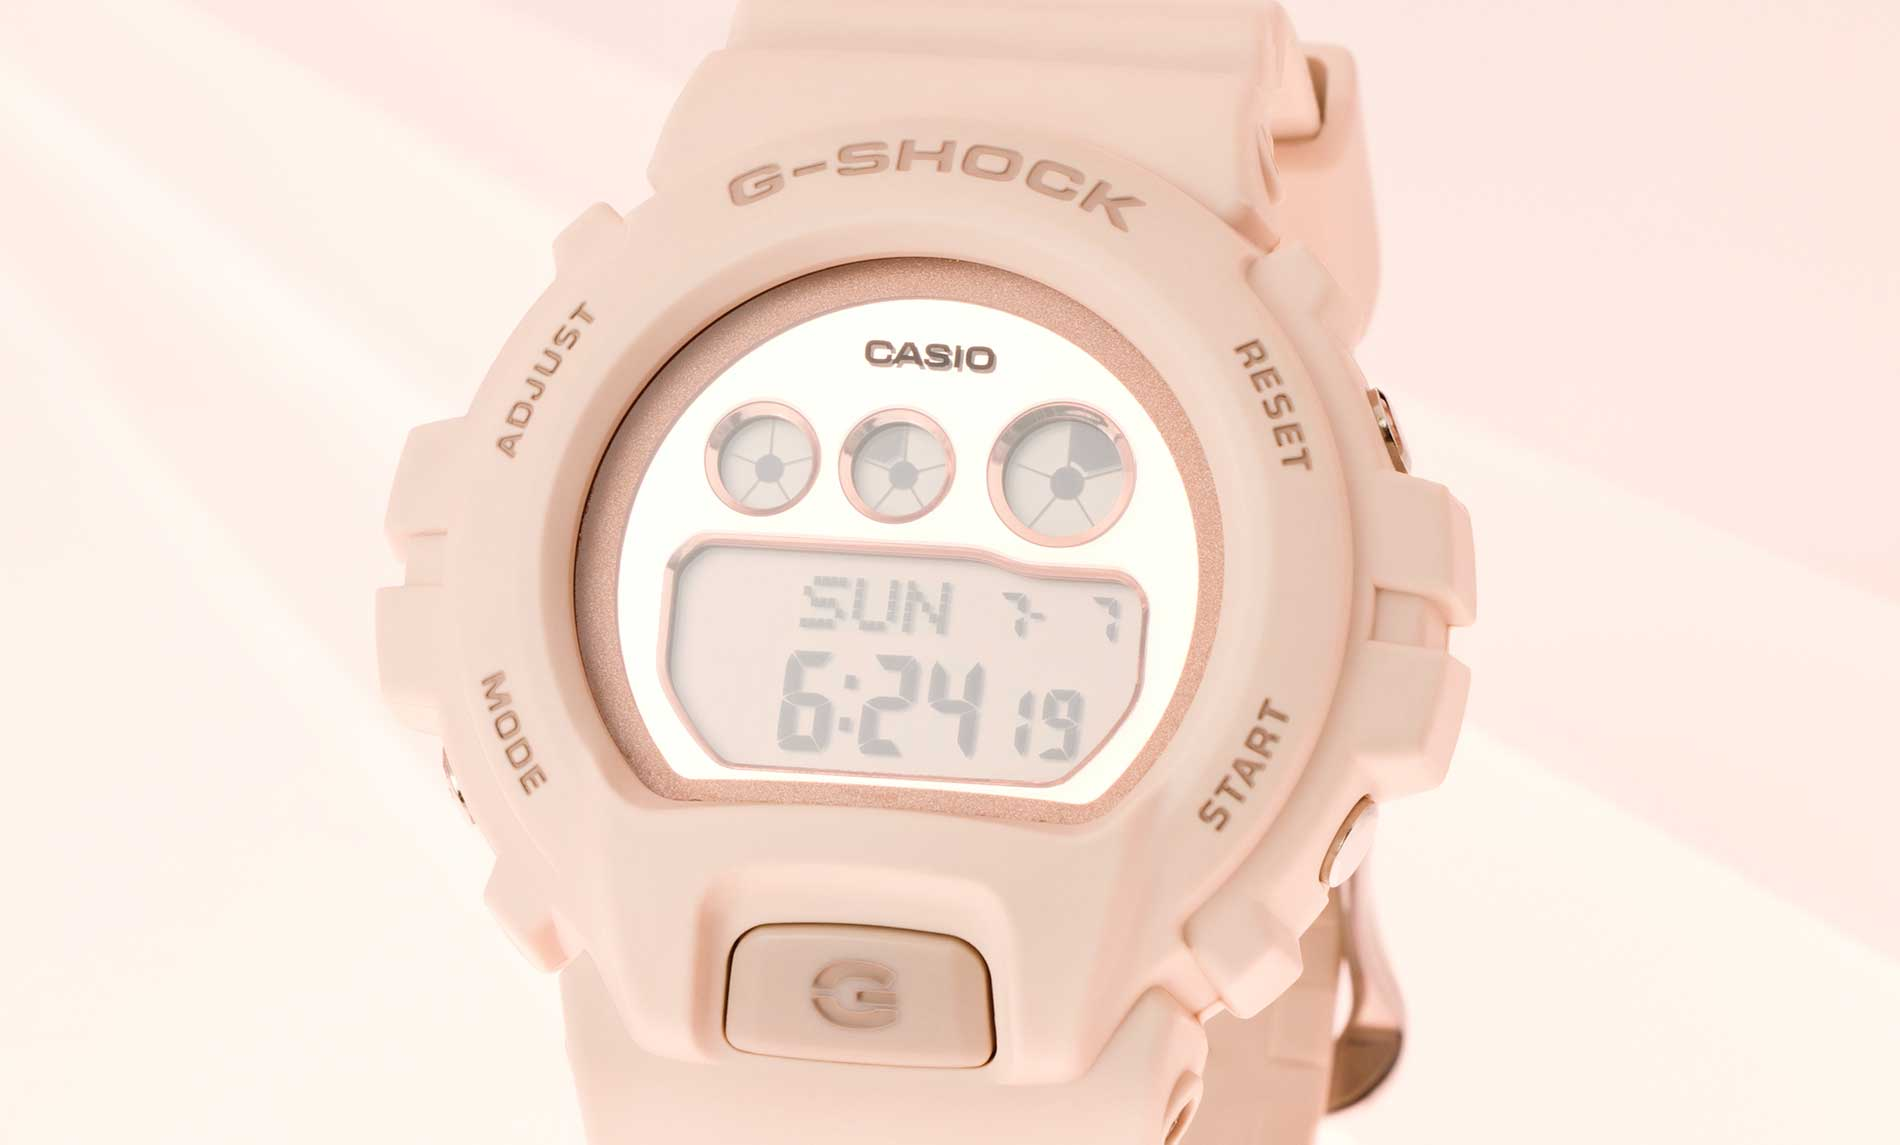 gmds6900mc g-shock watch